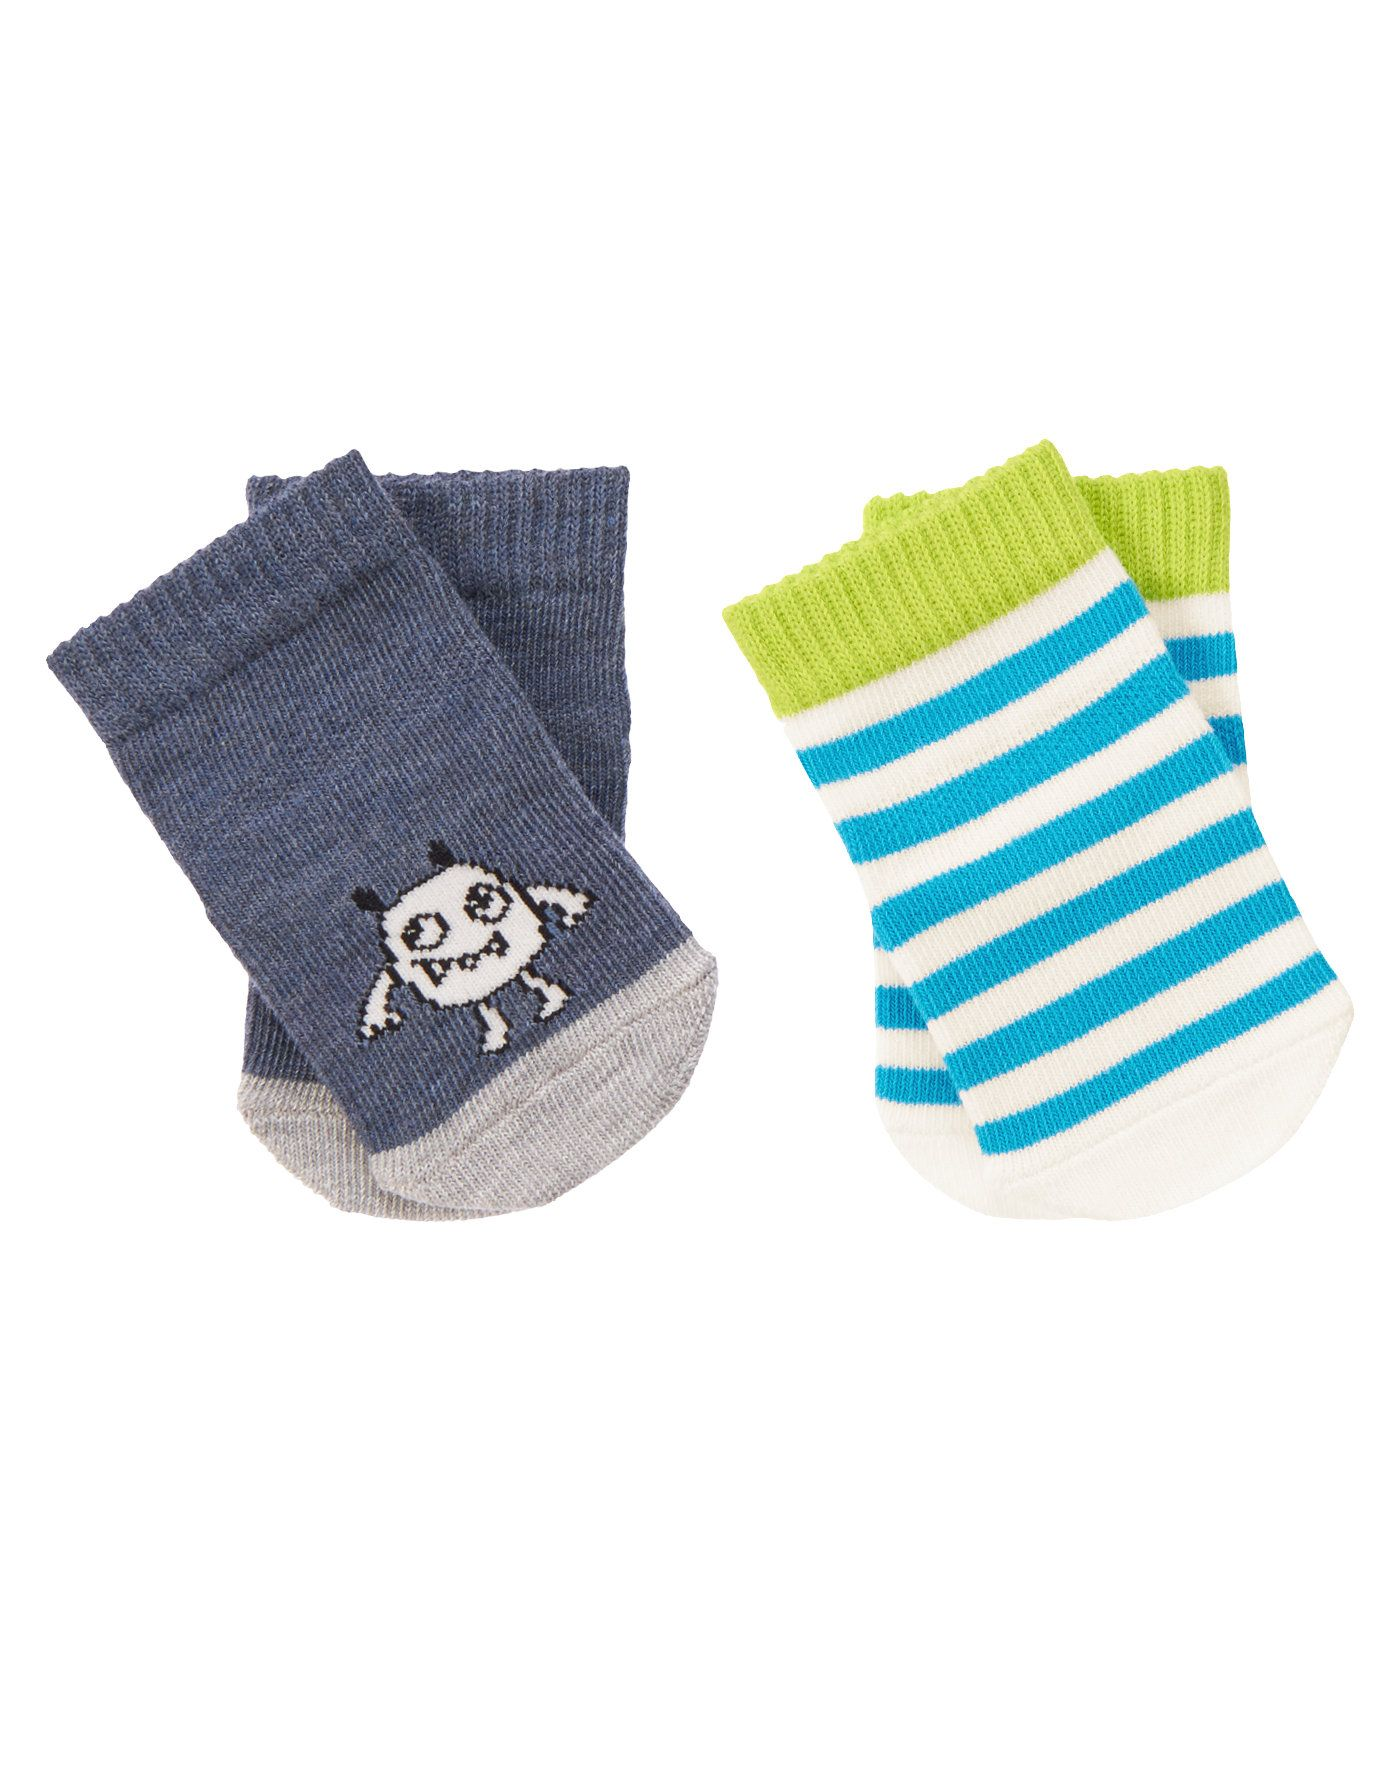 Baby Monster Socks Two Pack at Gymboree Collection Name Fun